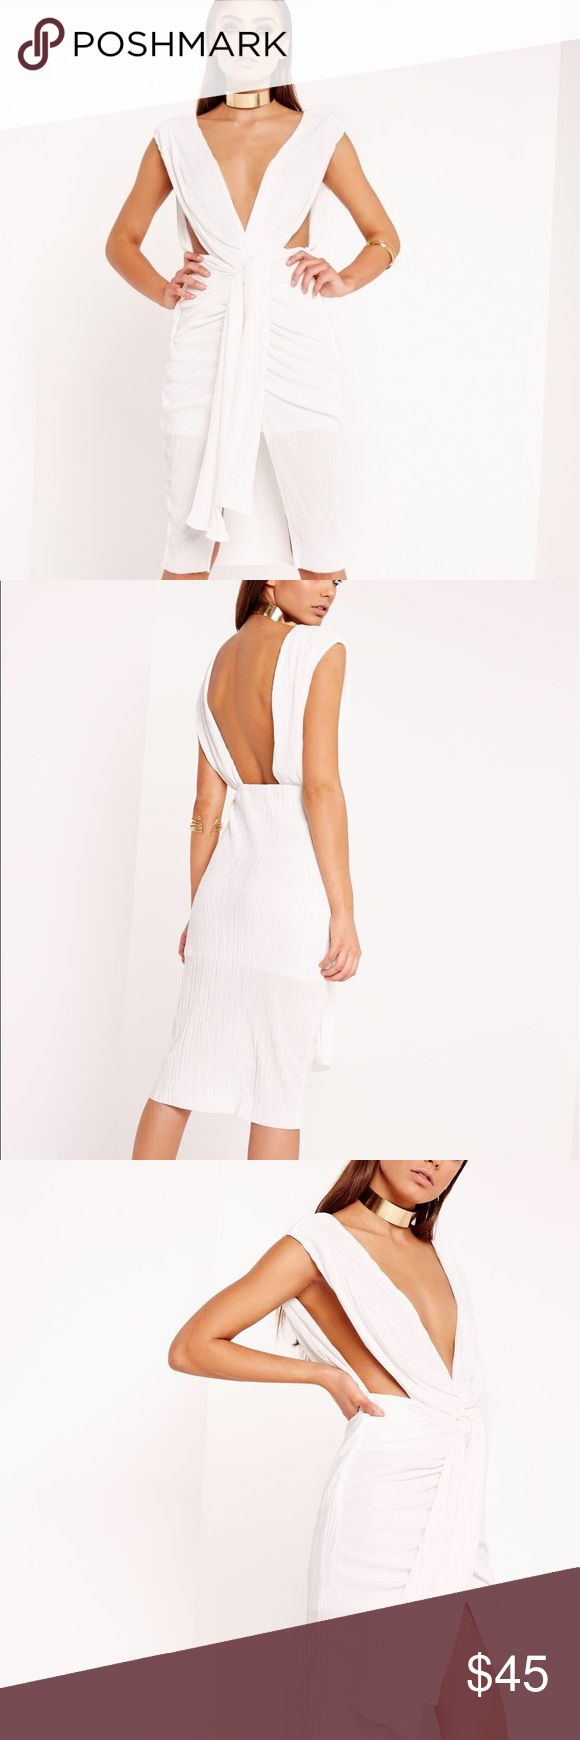 MISSGUIDED PLEATED WHITE DRESS Make a dramatic entrance anywhere you go in this white midi dress! in a figure flattering pleated finish in a soft premium material, this ruched detailed dress is a major must have. with wrap over detailing to the front to create a tied effect and cut out detailing to each side, this plunging beaut will turn up the heat! Missguided Dresses Midi